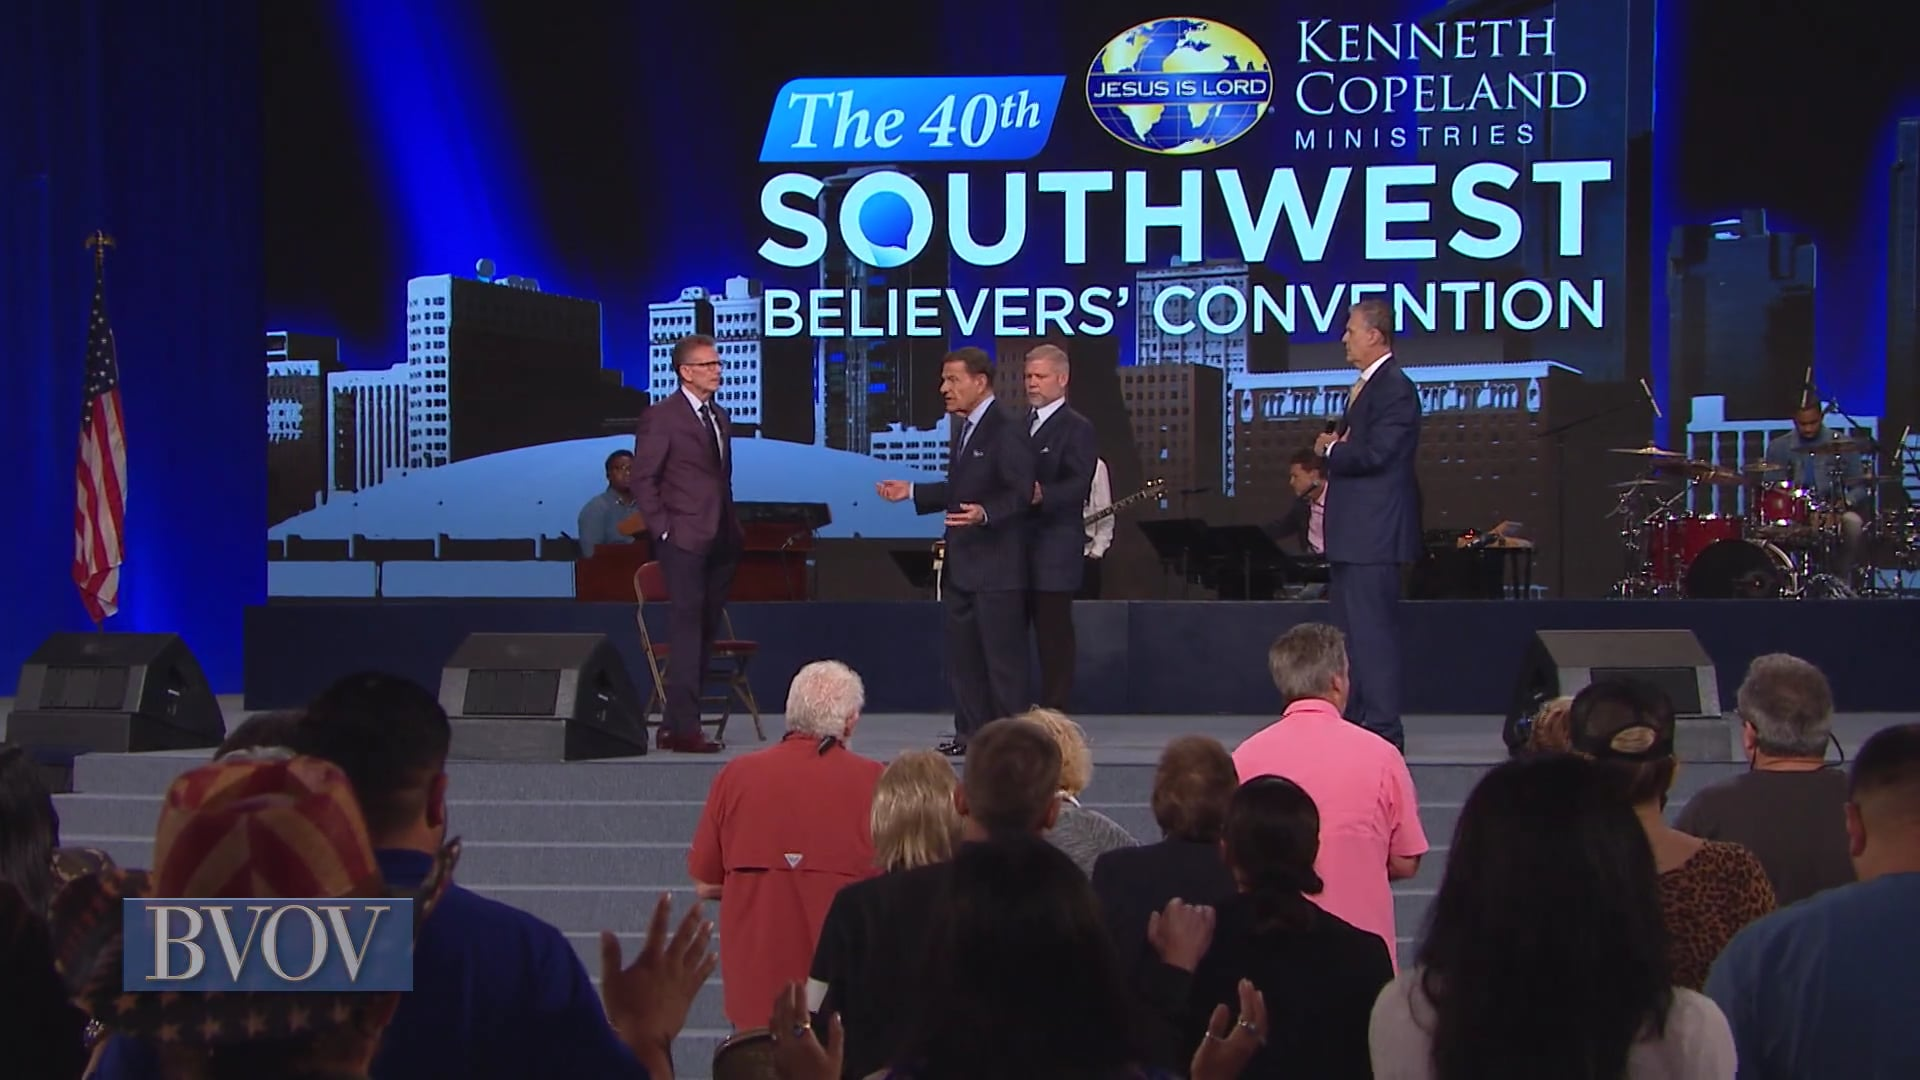 Get ready to shout! Watch Believer's Voice of Victory as Kenneth Copeland leads you in a victory shout over every attack on your mind and body. It's time to shout your victory over sickness, and take your healing. The healing glory is here!